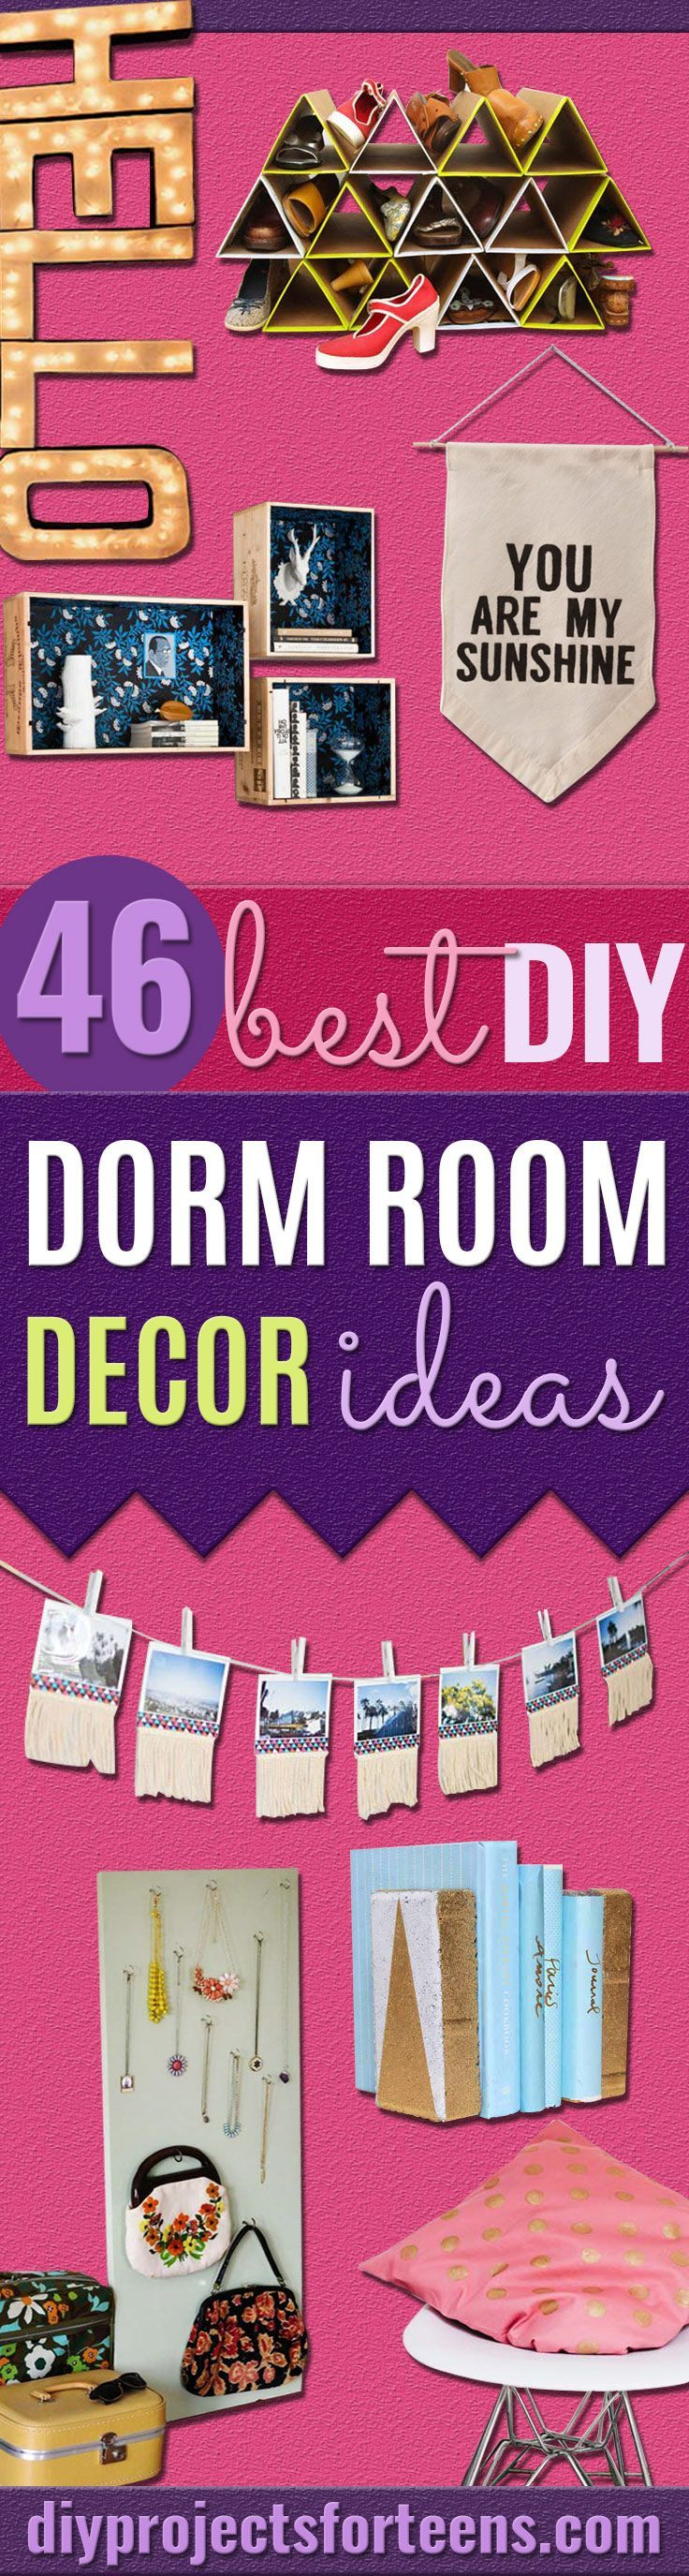 DIY Dorm Room Decor Ideas -Cheap DIY Dorm Decor Projects for College Rooms - Cool Crafts, Wall Art, Easy Organization for Girls - Fun DYI Tutorials for Teens and College Students http://diyprojectsforteens.com/diy-dorm-room-decor